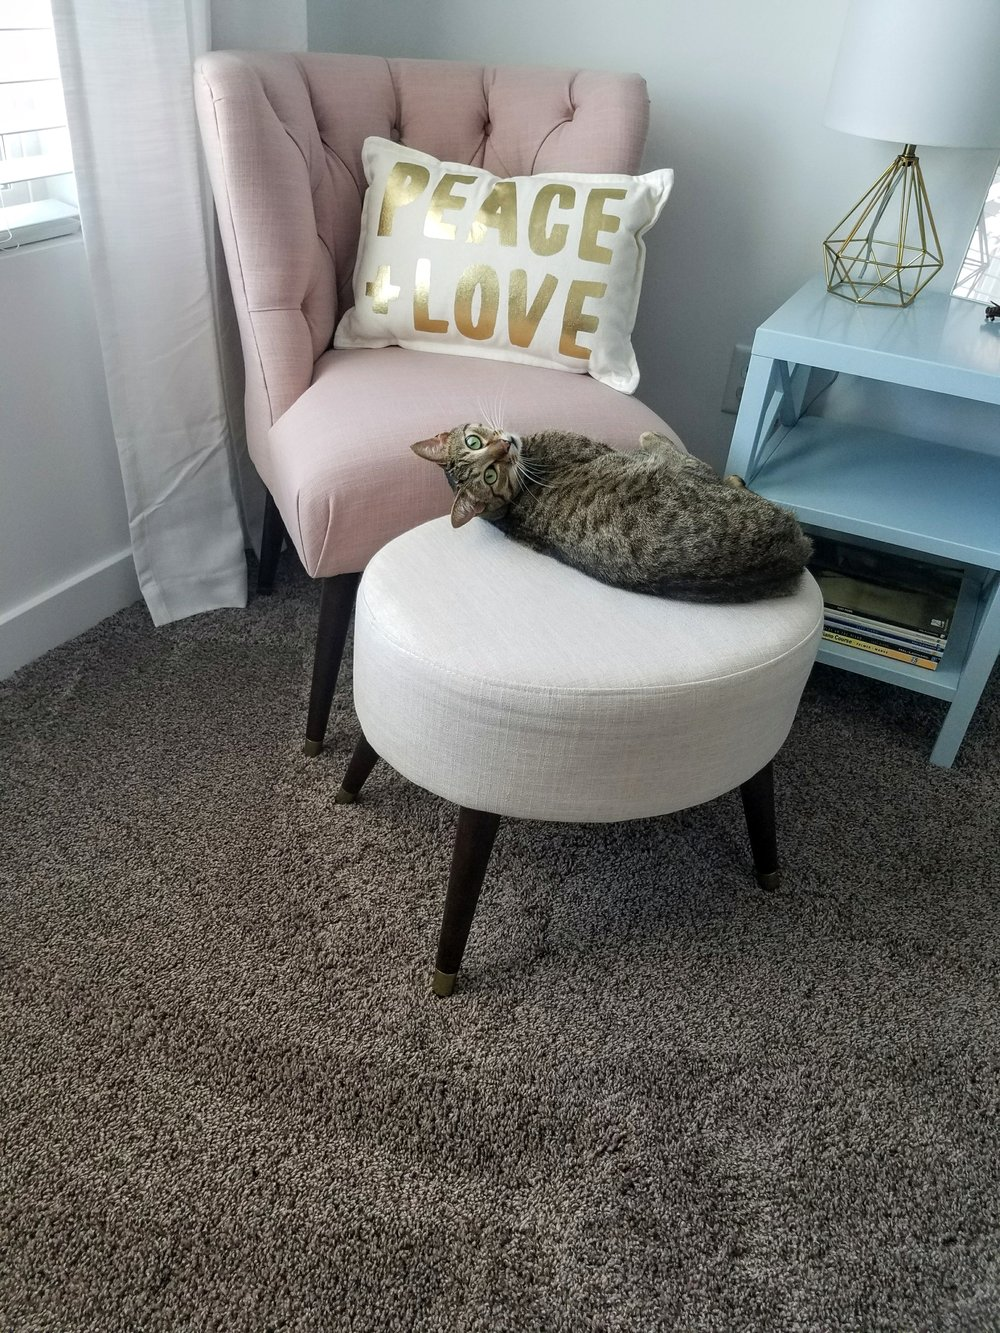 A little behind the scenes because the cats love it too!